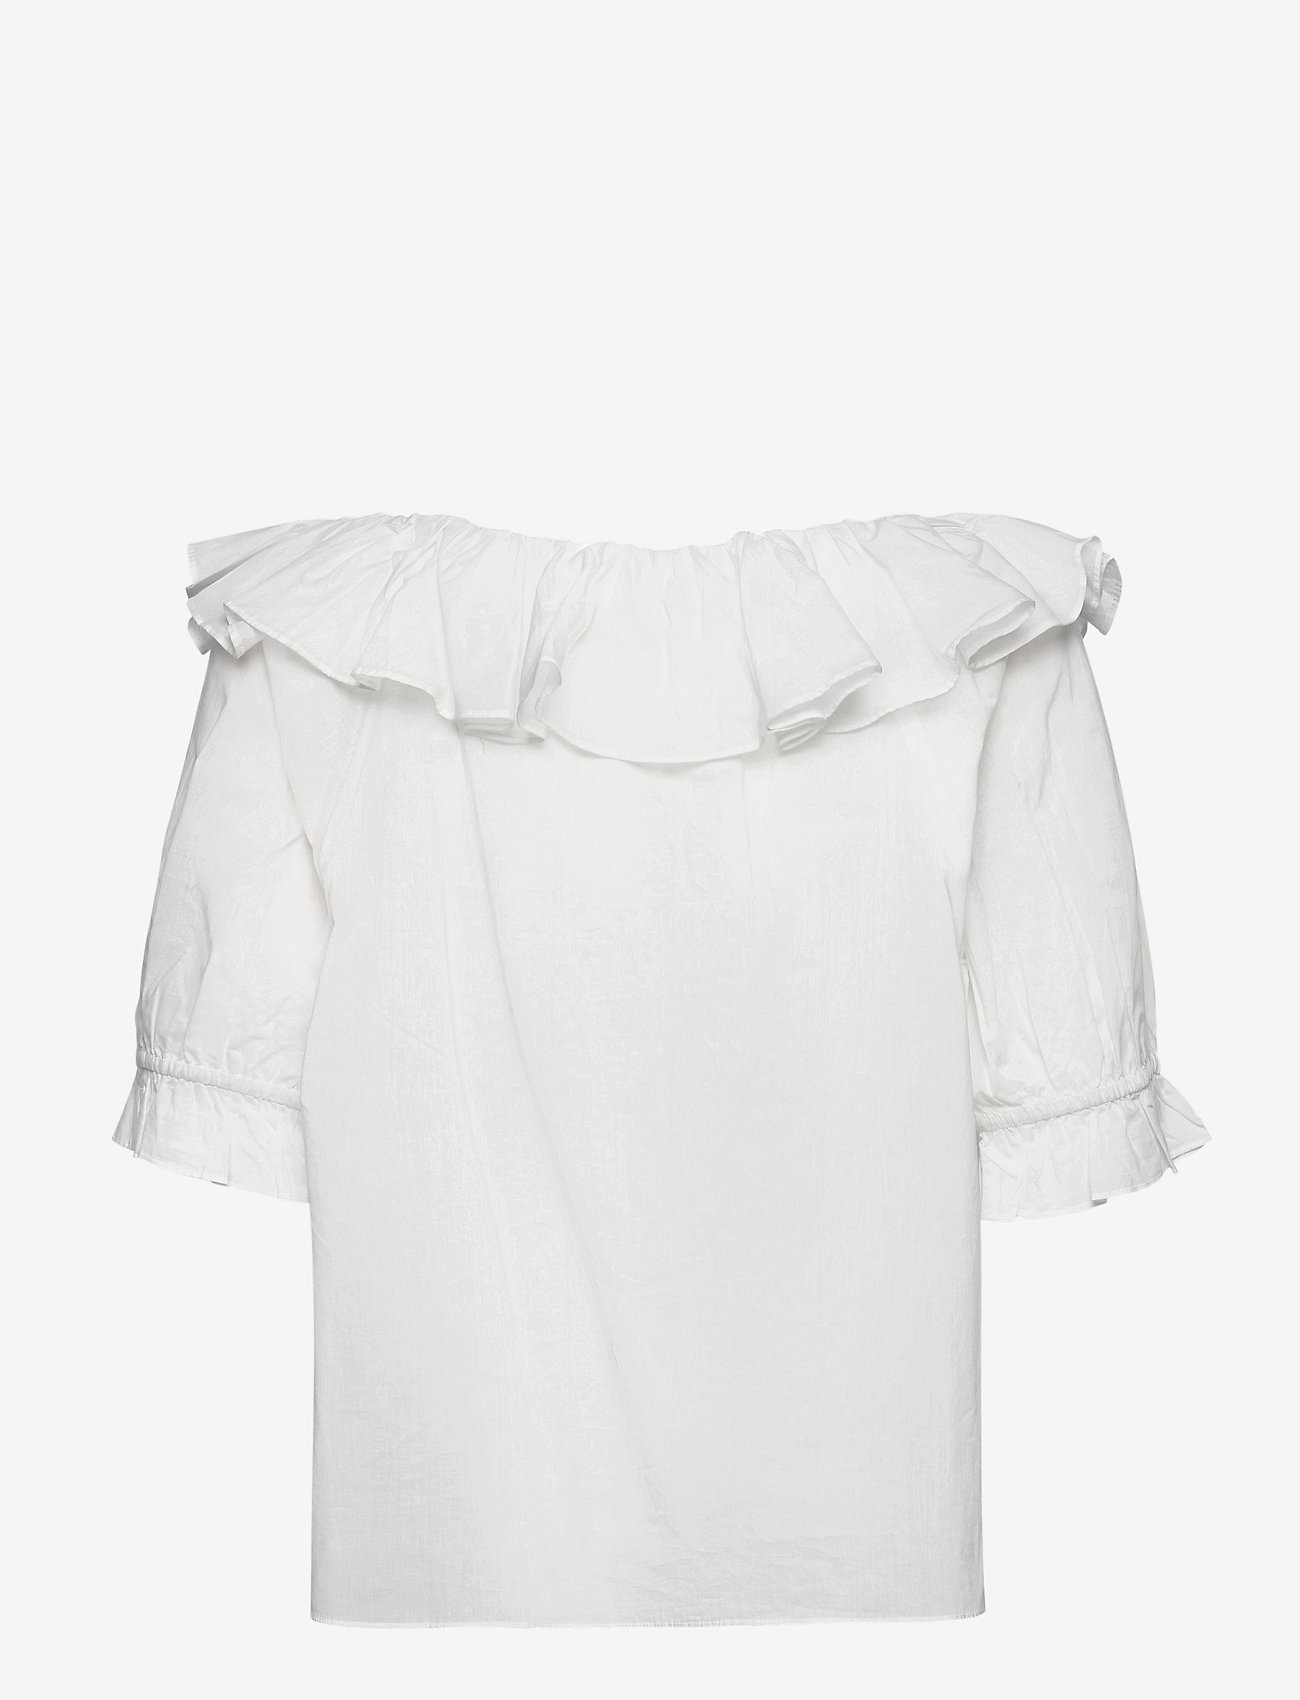 2NDDAY - 2ND Elon Thinktwice - short-sleeved blouses - bright white - 1